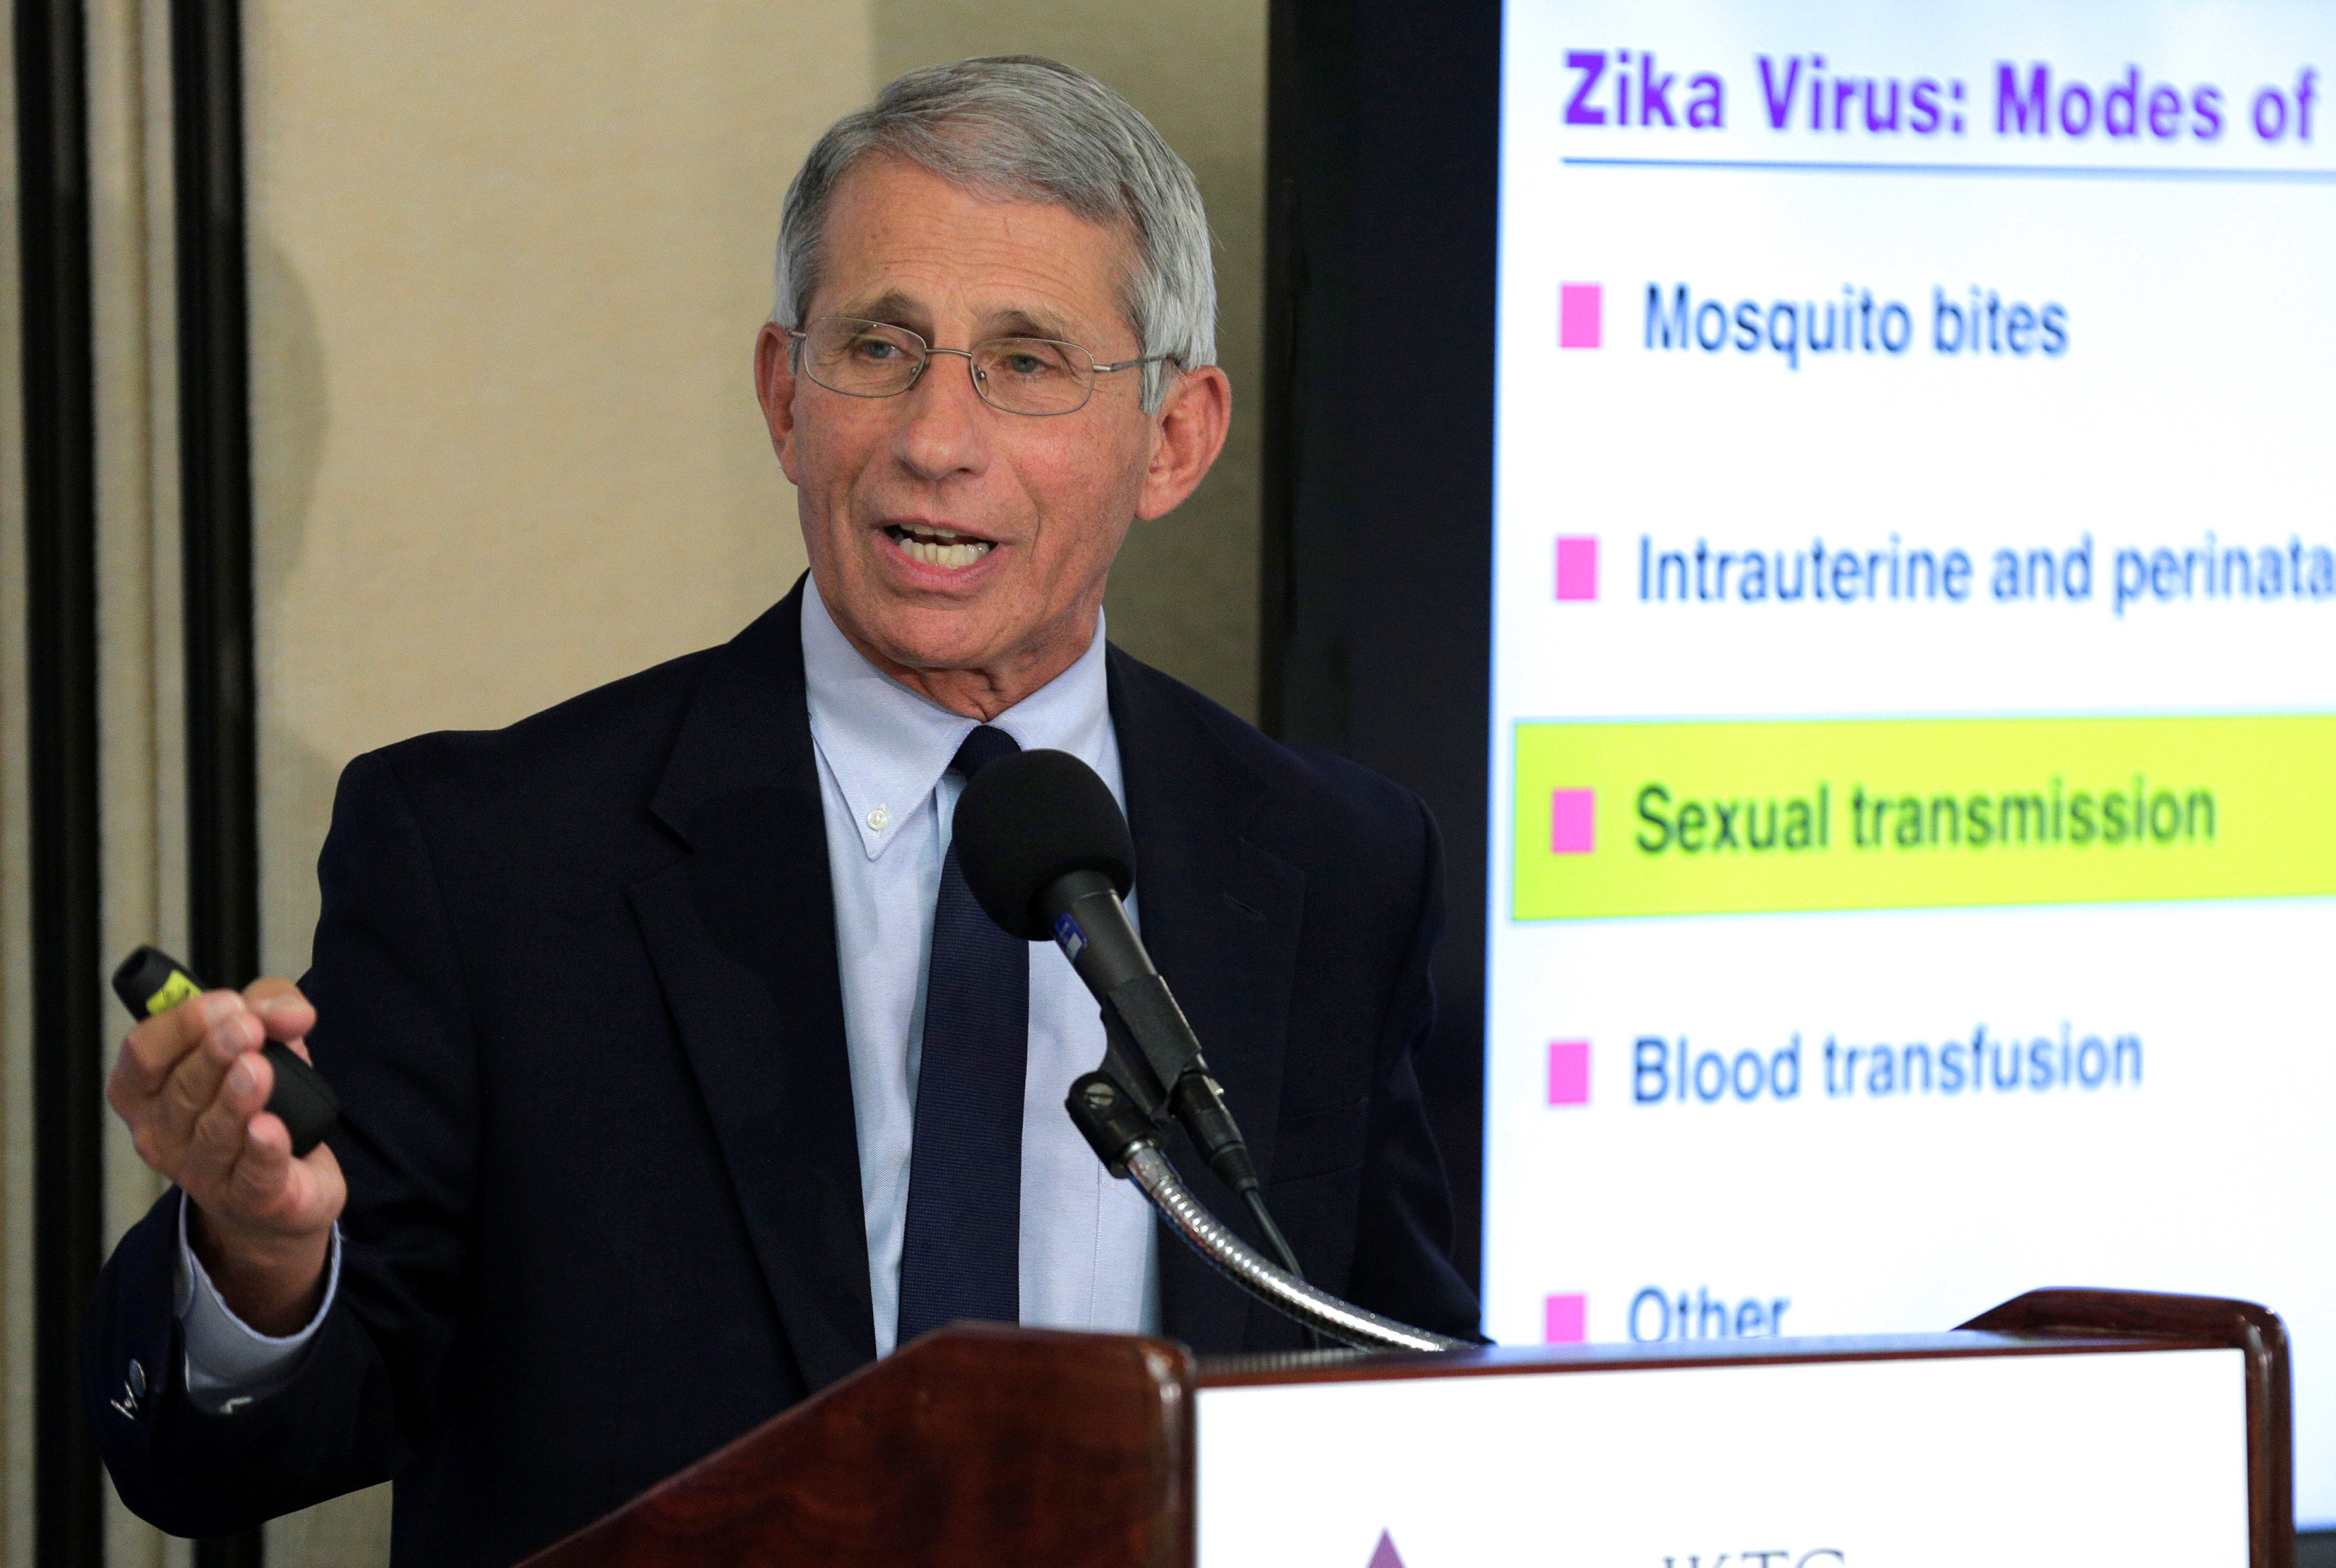 Dr. Anthony Fauci, director of the National Institute of Allergy and Infectious Diseases at the National Institutes of Health speaks to the media about the Zika virus in Washington